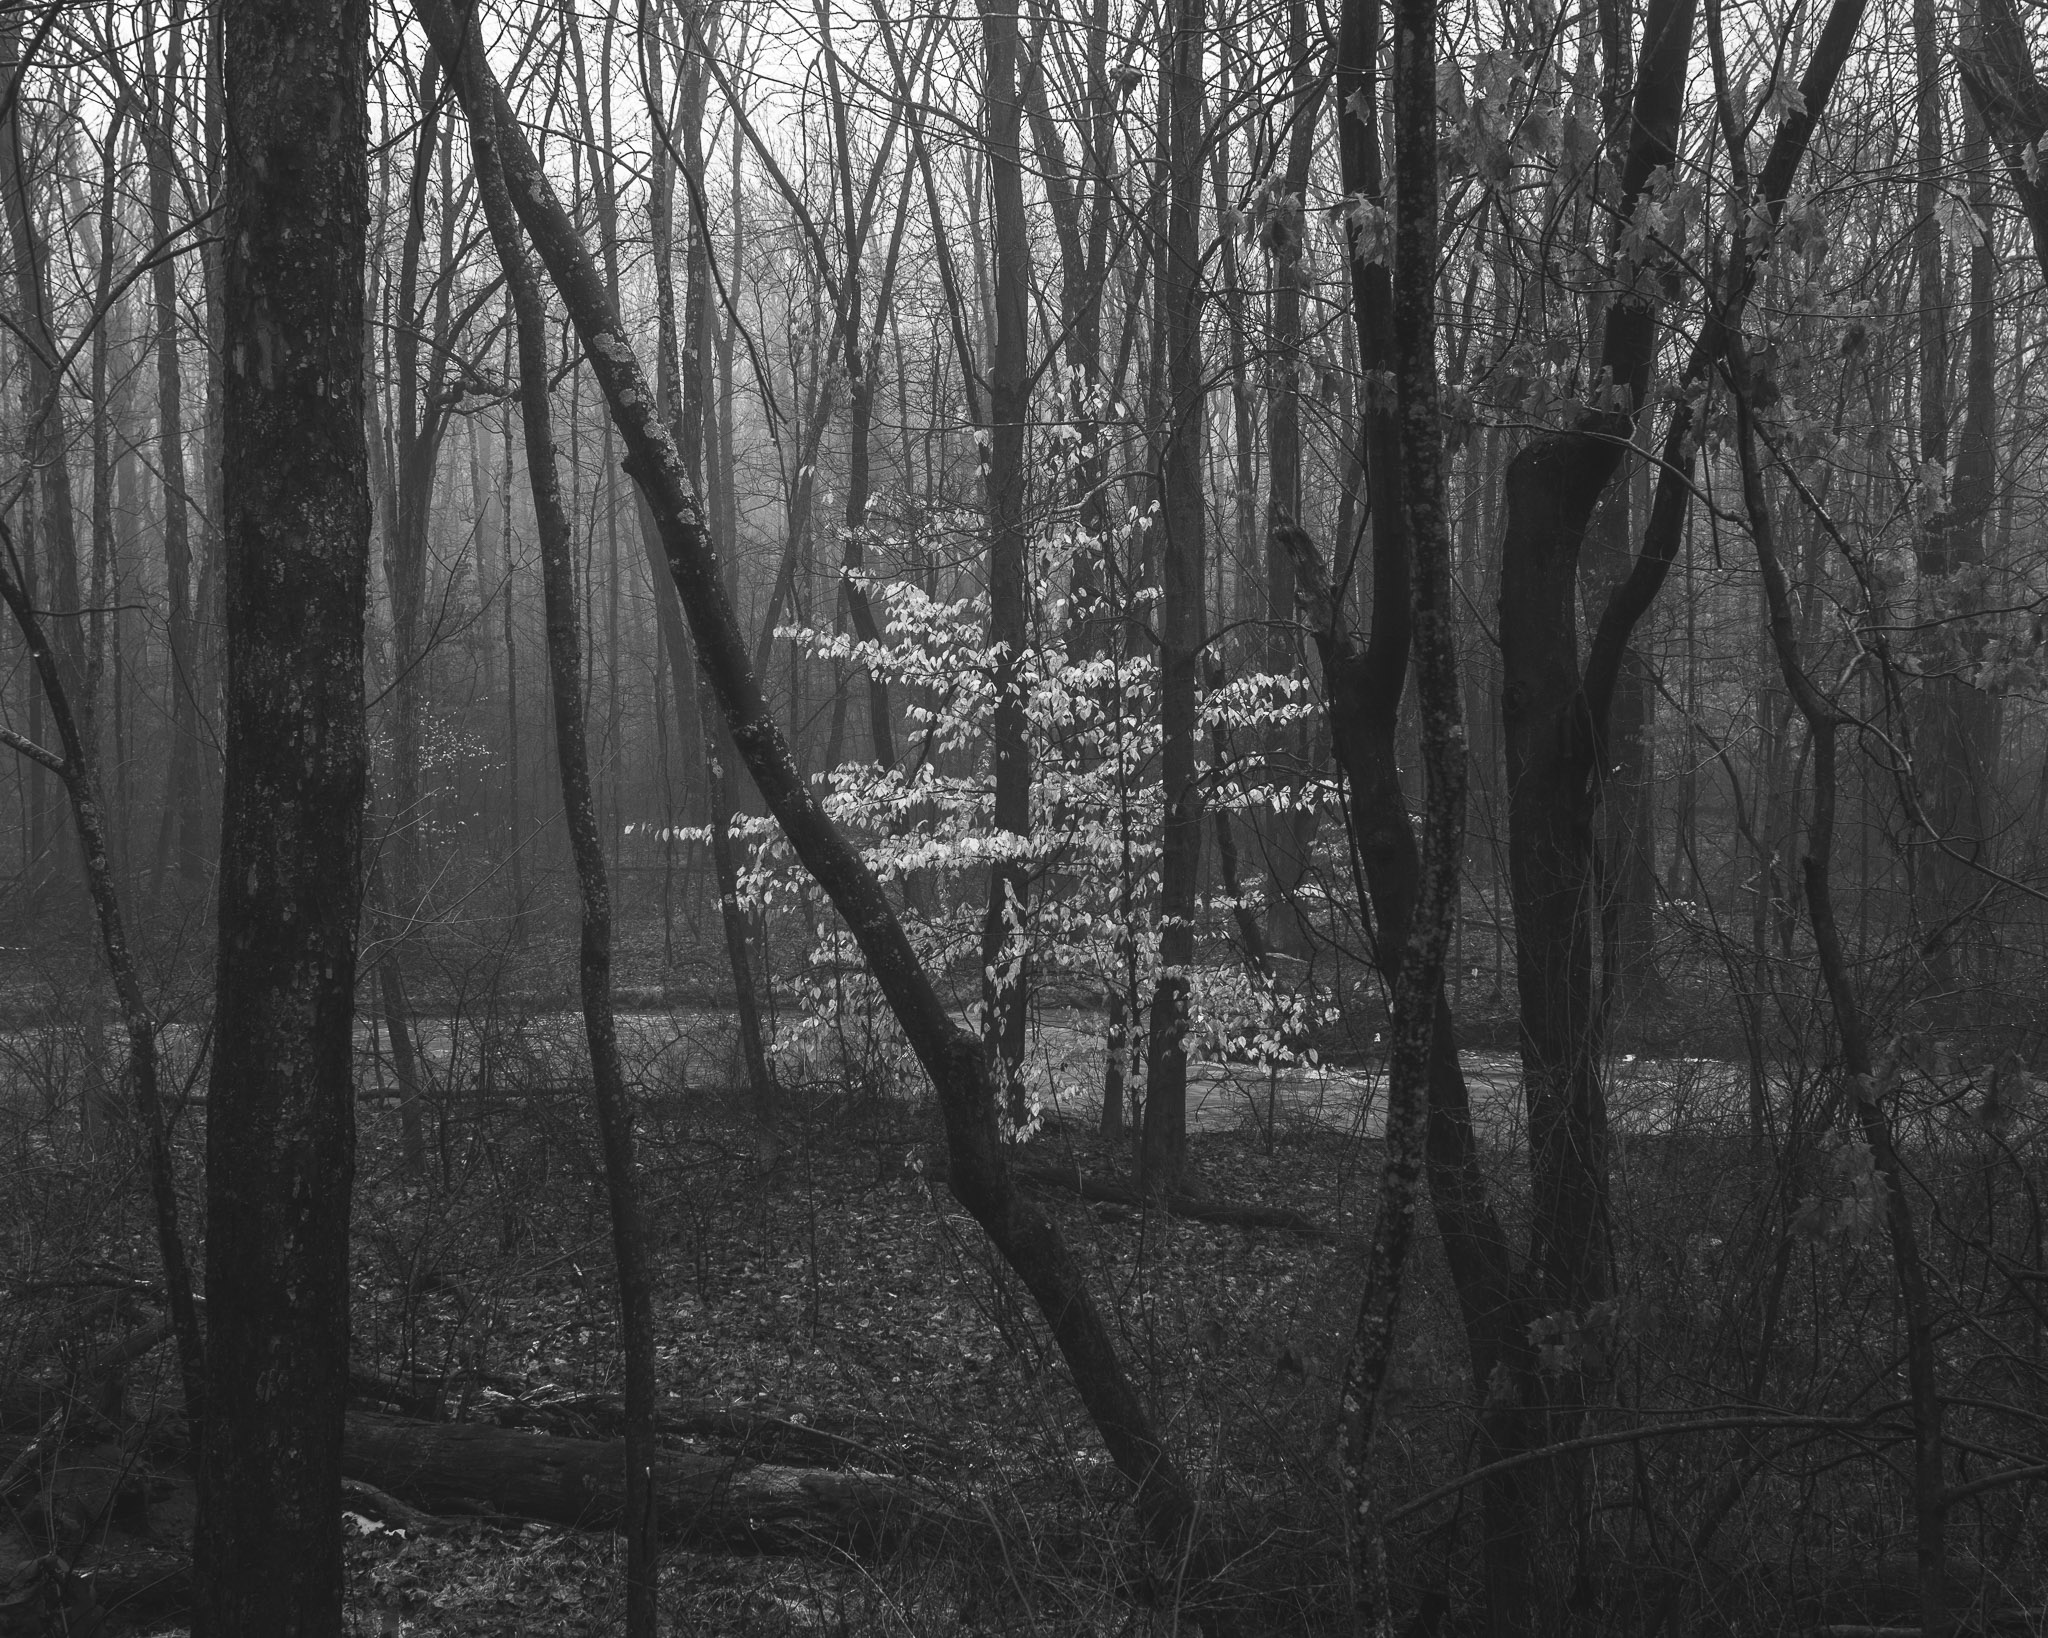 A black and white photograph made by fine artist Cody Schultz depicts a single, fully-leaved tree glistening a dull, off-white color amongst a forest full of barren, almost-black trees. The foggy atmosphere helps to make the glistening tree further stand out from the rest of the scene. A river runs through the middle of the scene.